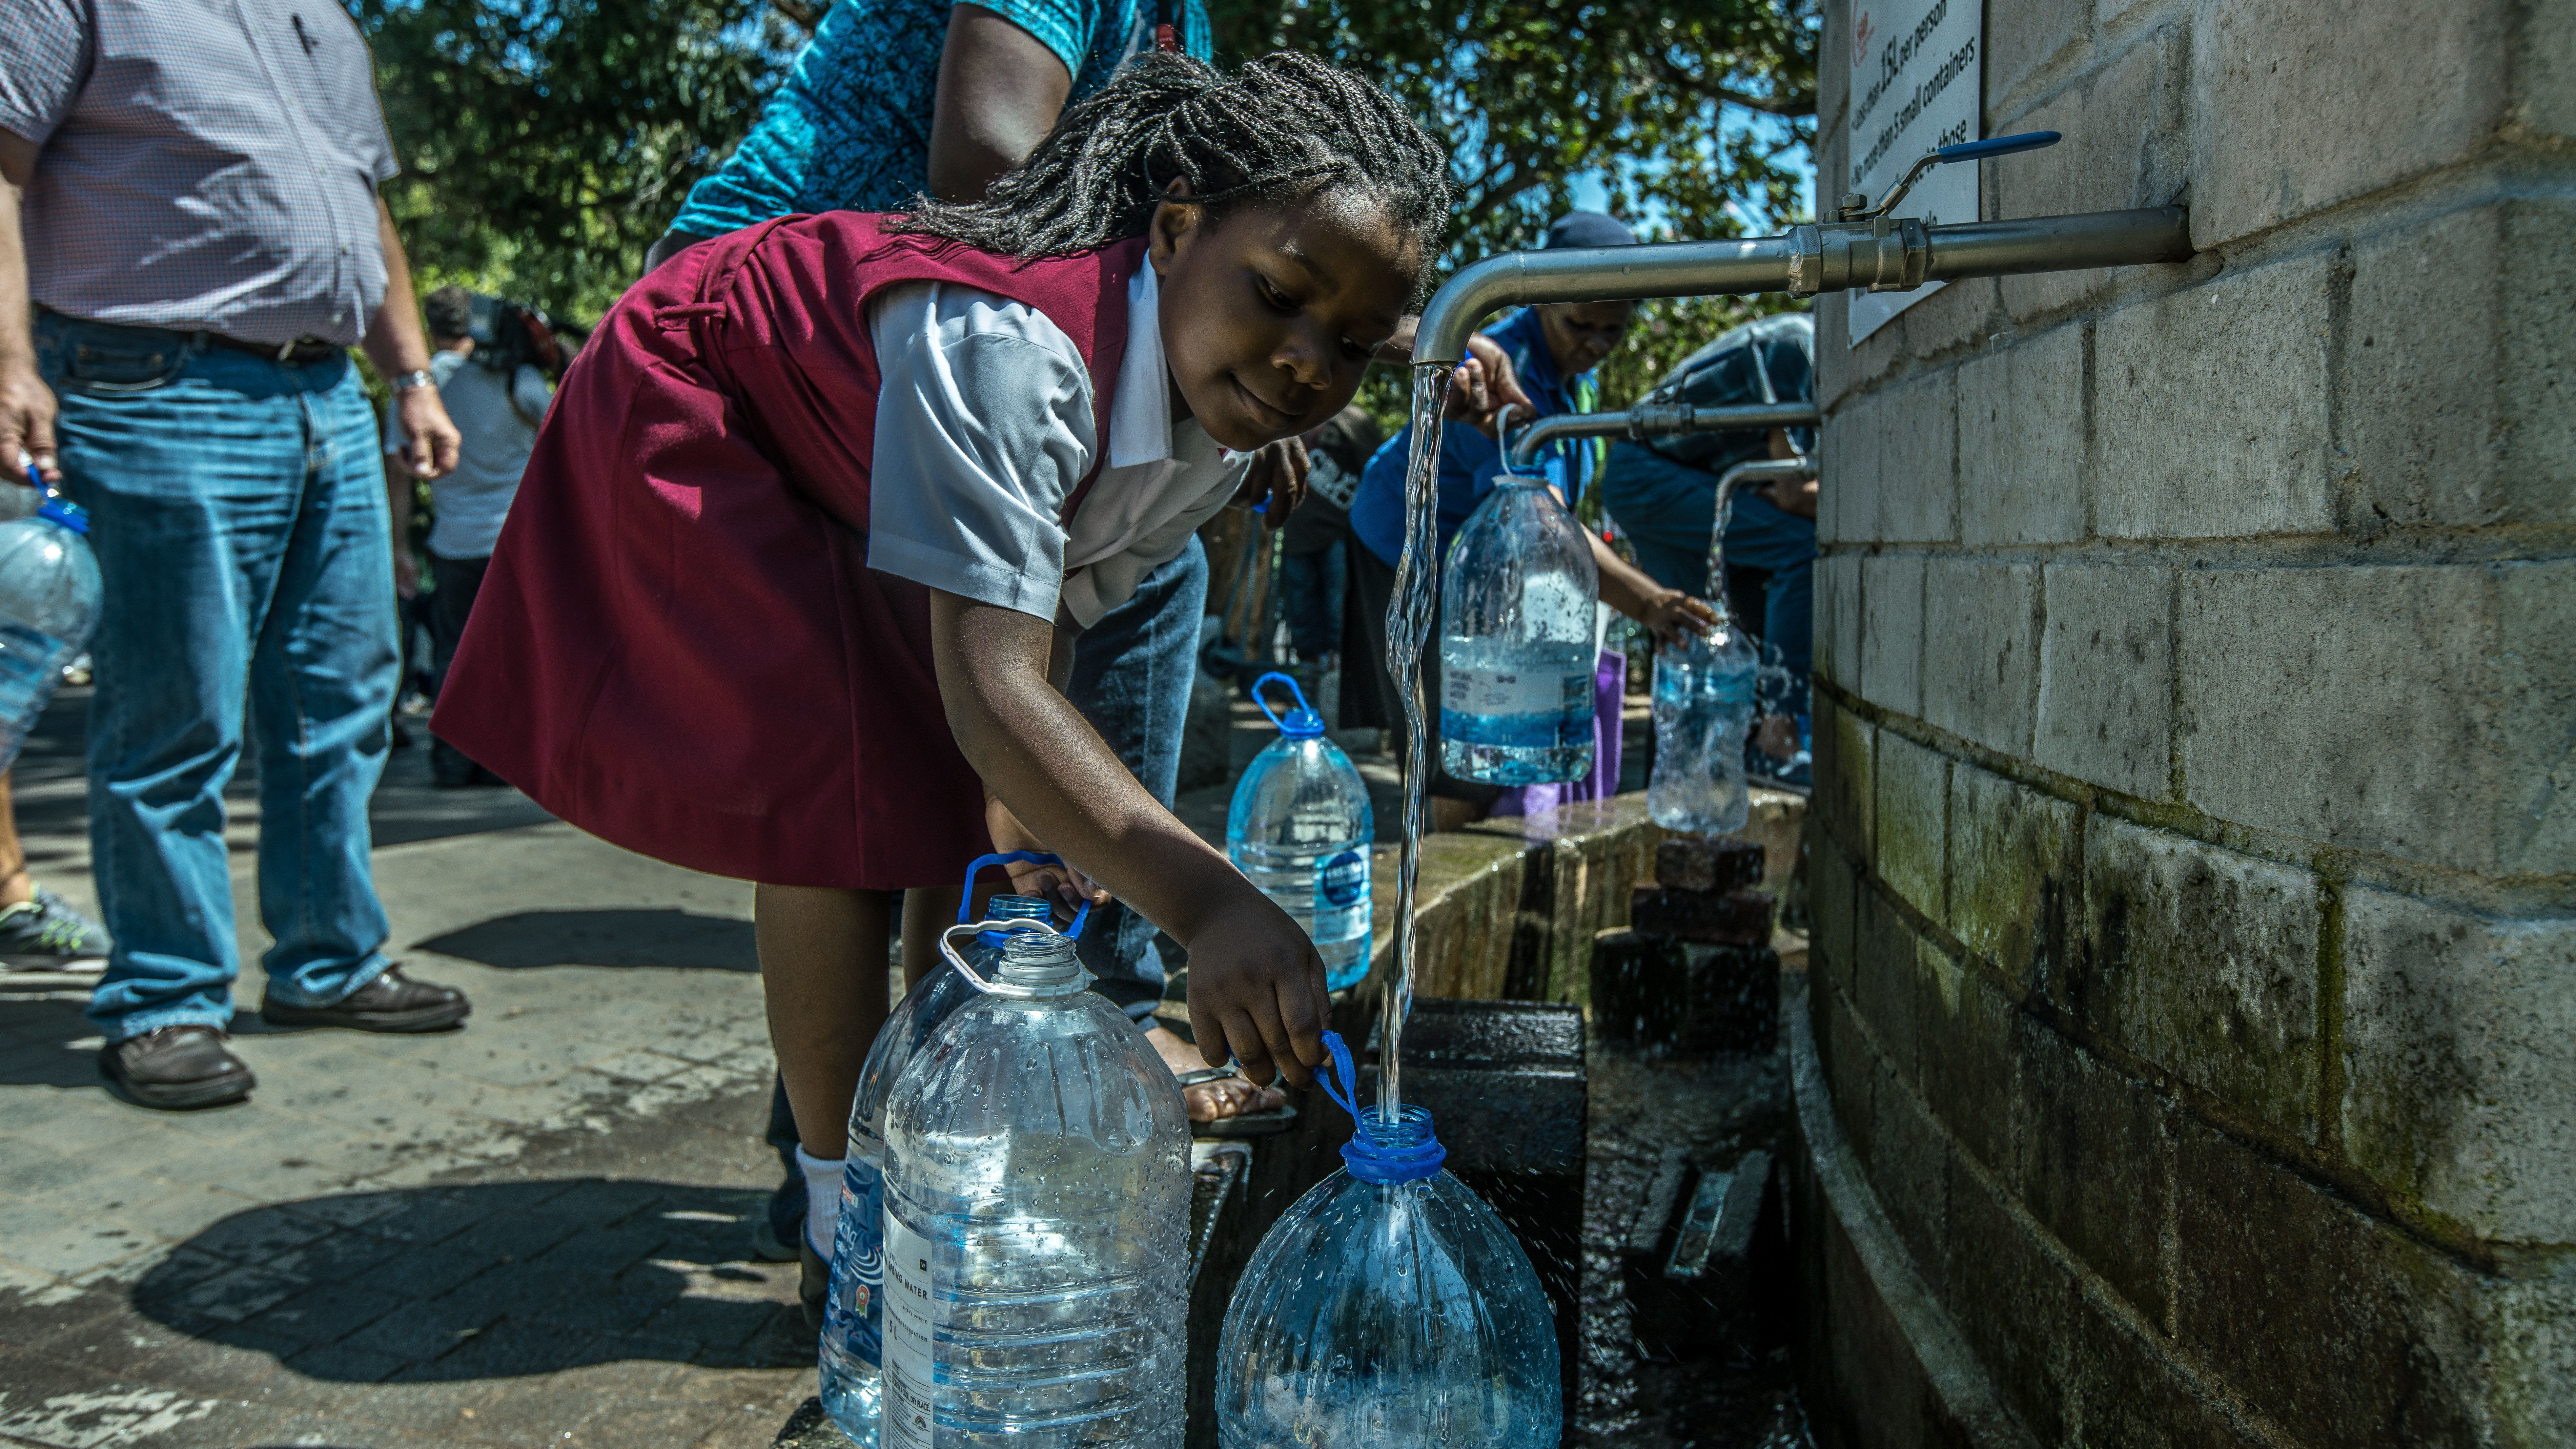 Cape Town Slashes Daily Water Allowance But Pushes Back 'Day